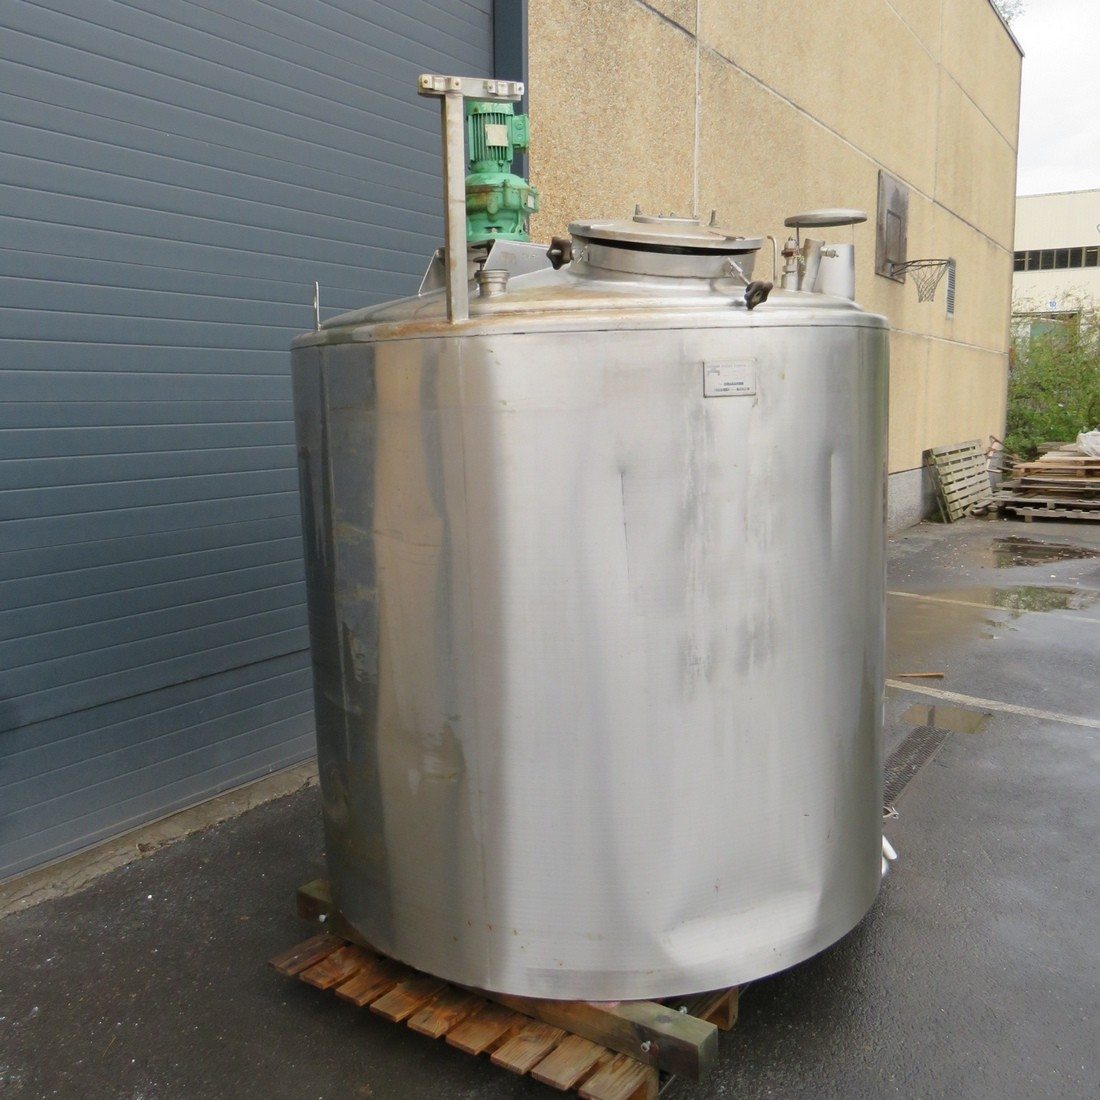 R6MA6142 Stainless steel PIERRE GUERIN mixing tank capacity 3130 litres